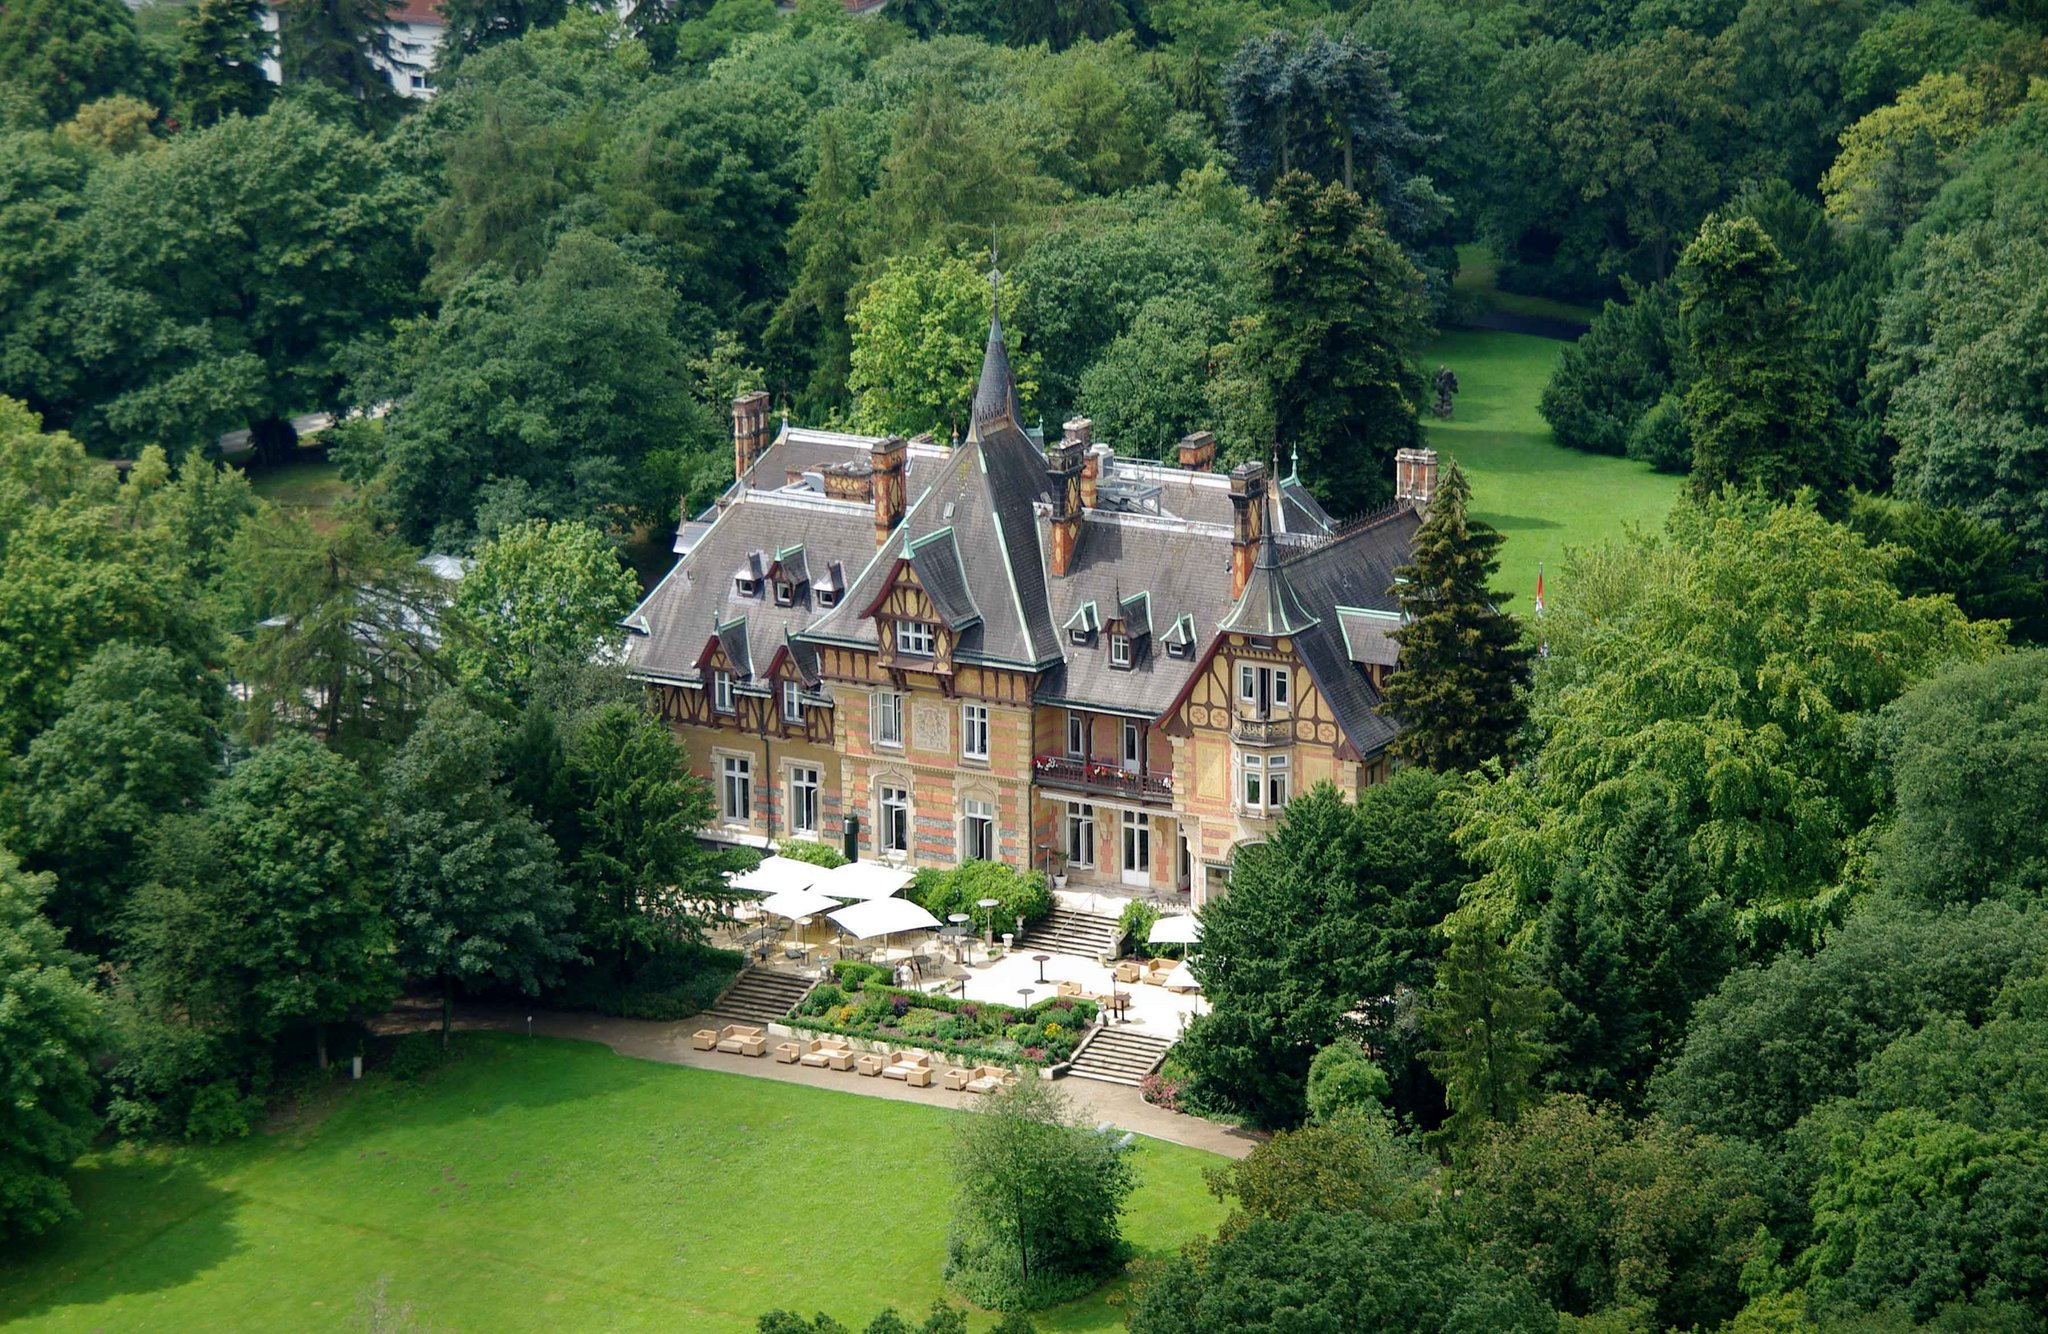 The Villa Rothschild Kempinski